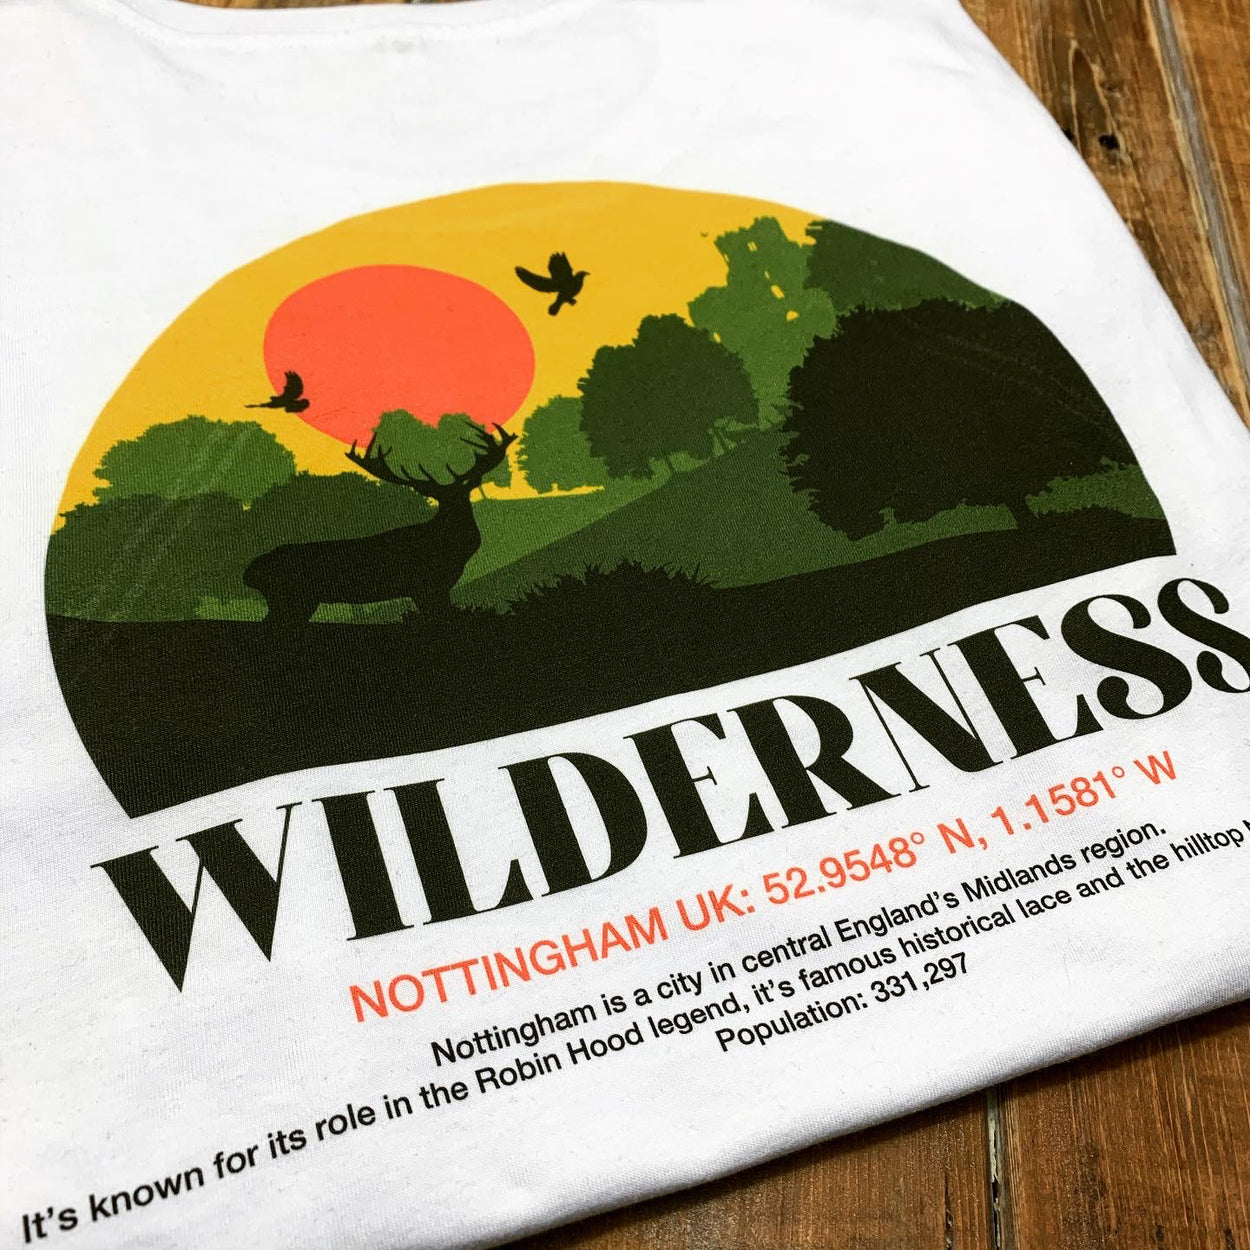 A close up image of a white short sleeve t-shirt folded and photographed on a wooden floor with a back print of a Wilderness design and a description of Nottingham's coordinates